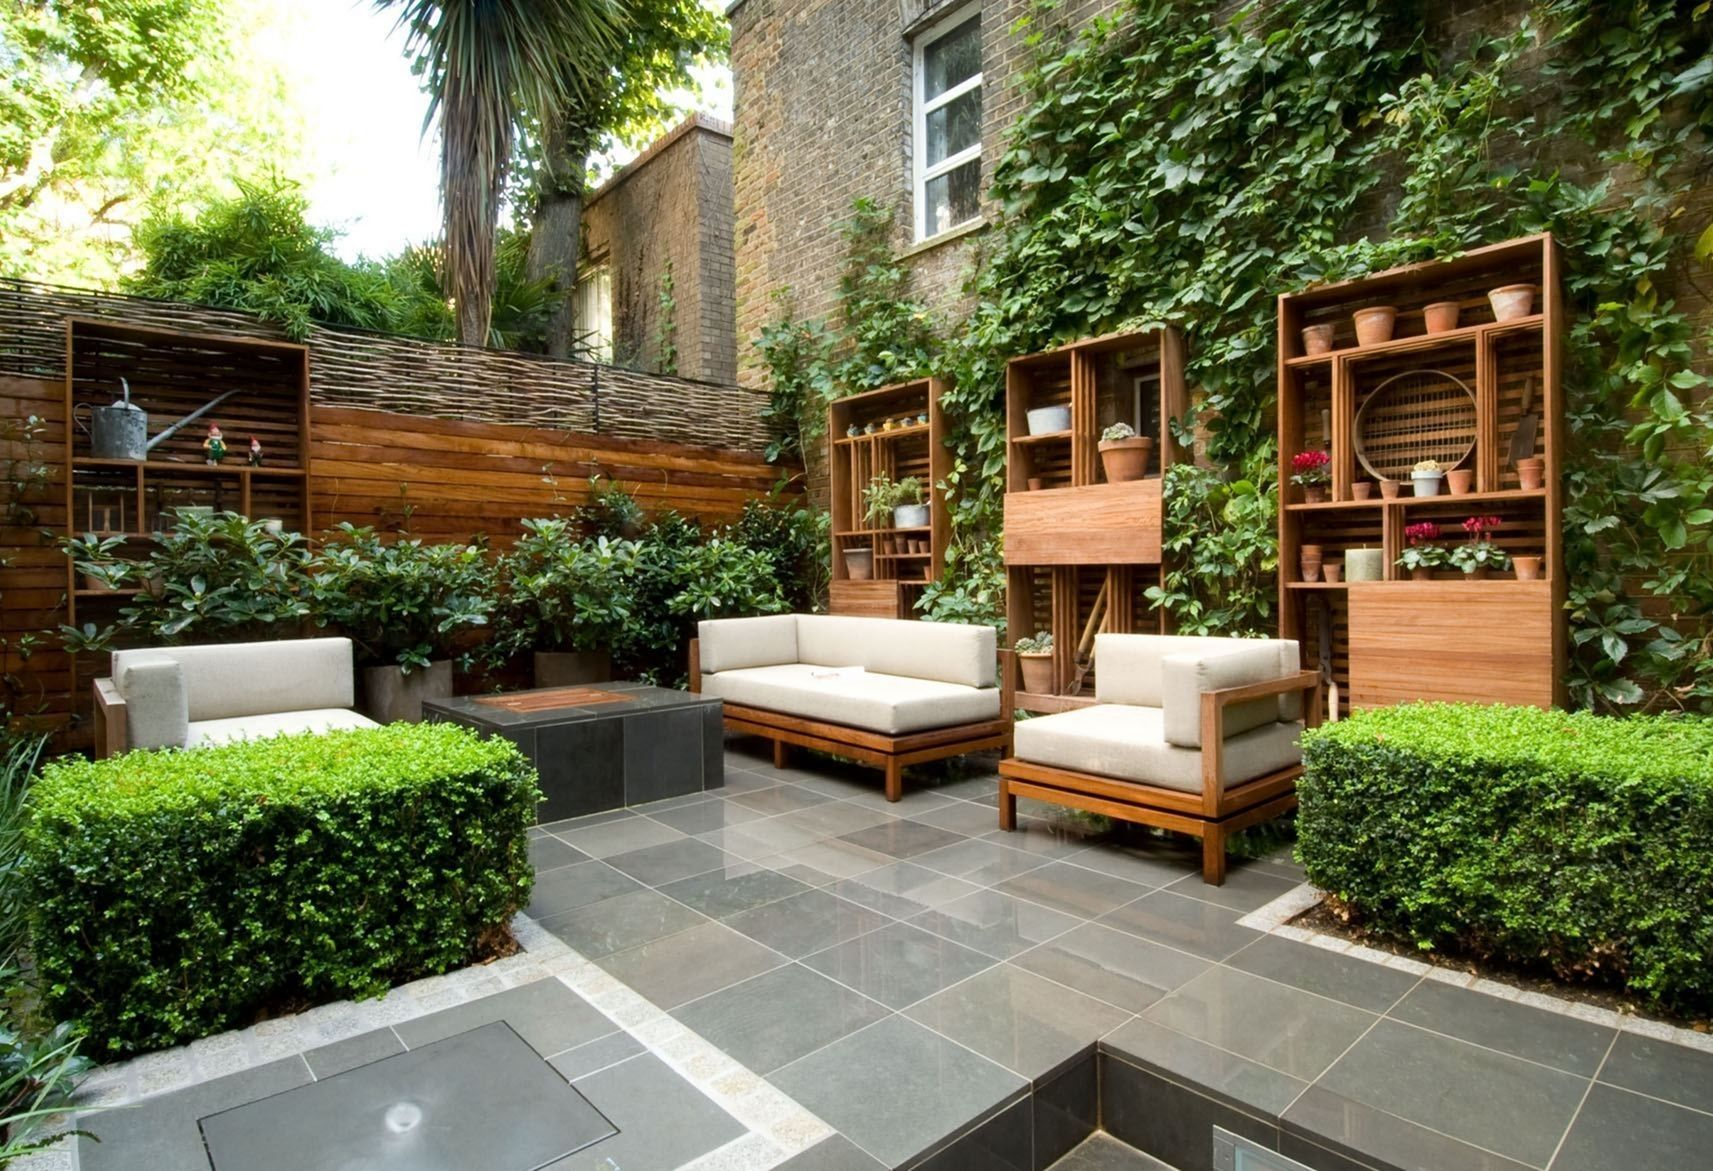 8 Ideas For The Ultimate Urban Oasis Small Backyard Landscaping Urban Garden Backyard Landscaping